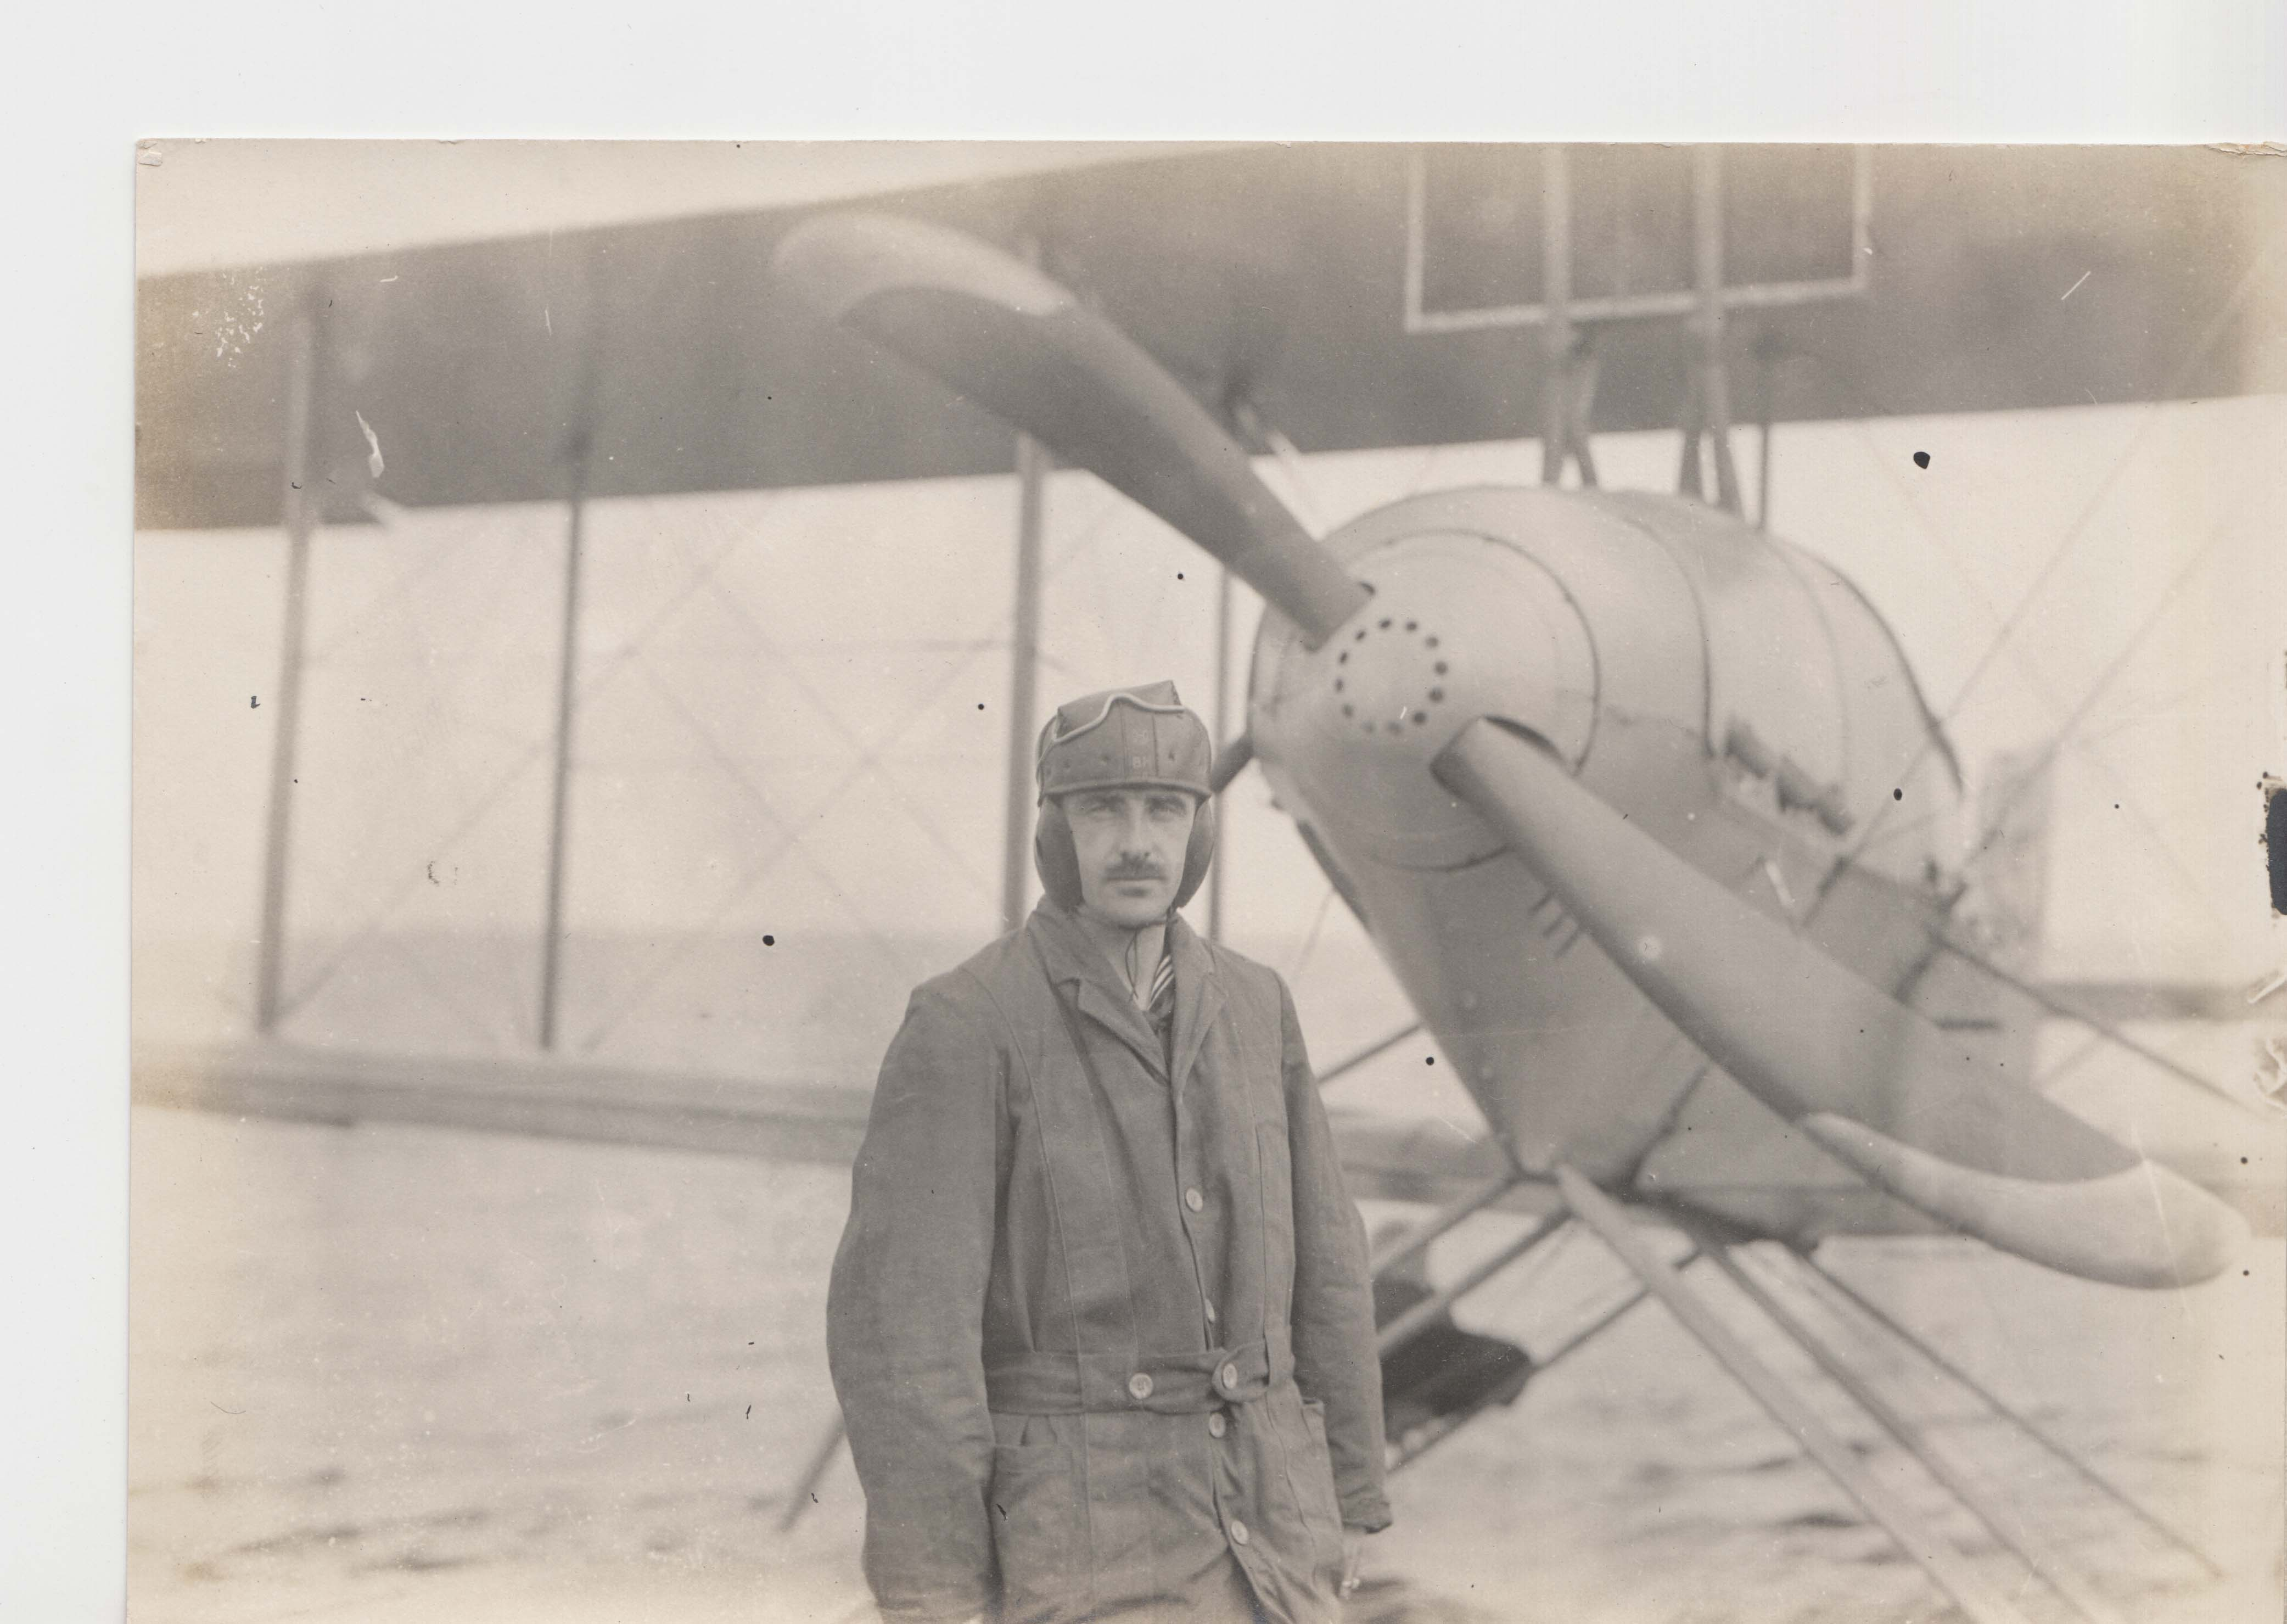 Estey in front of aeroplane on beach